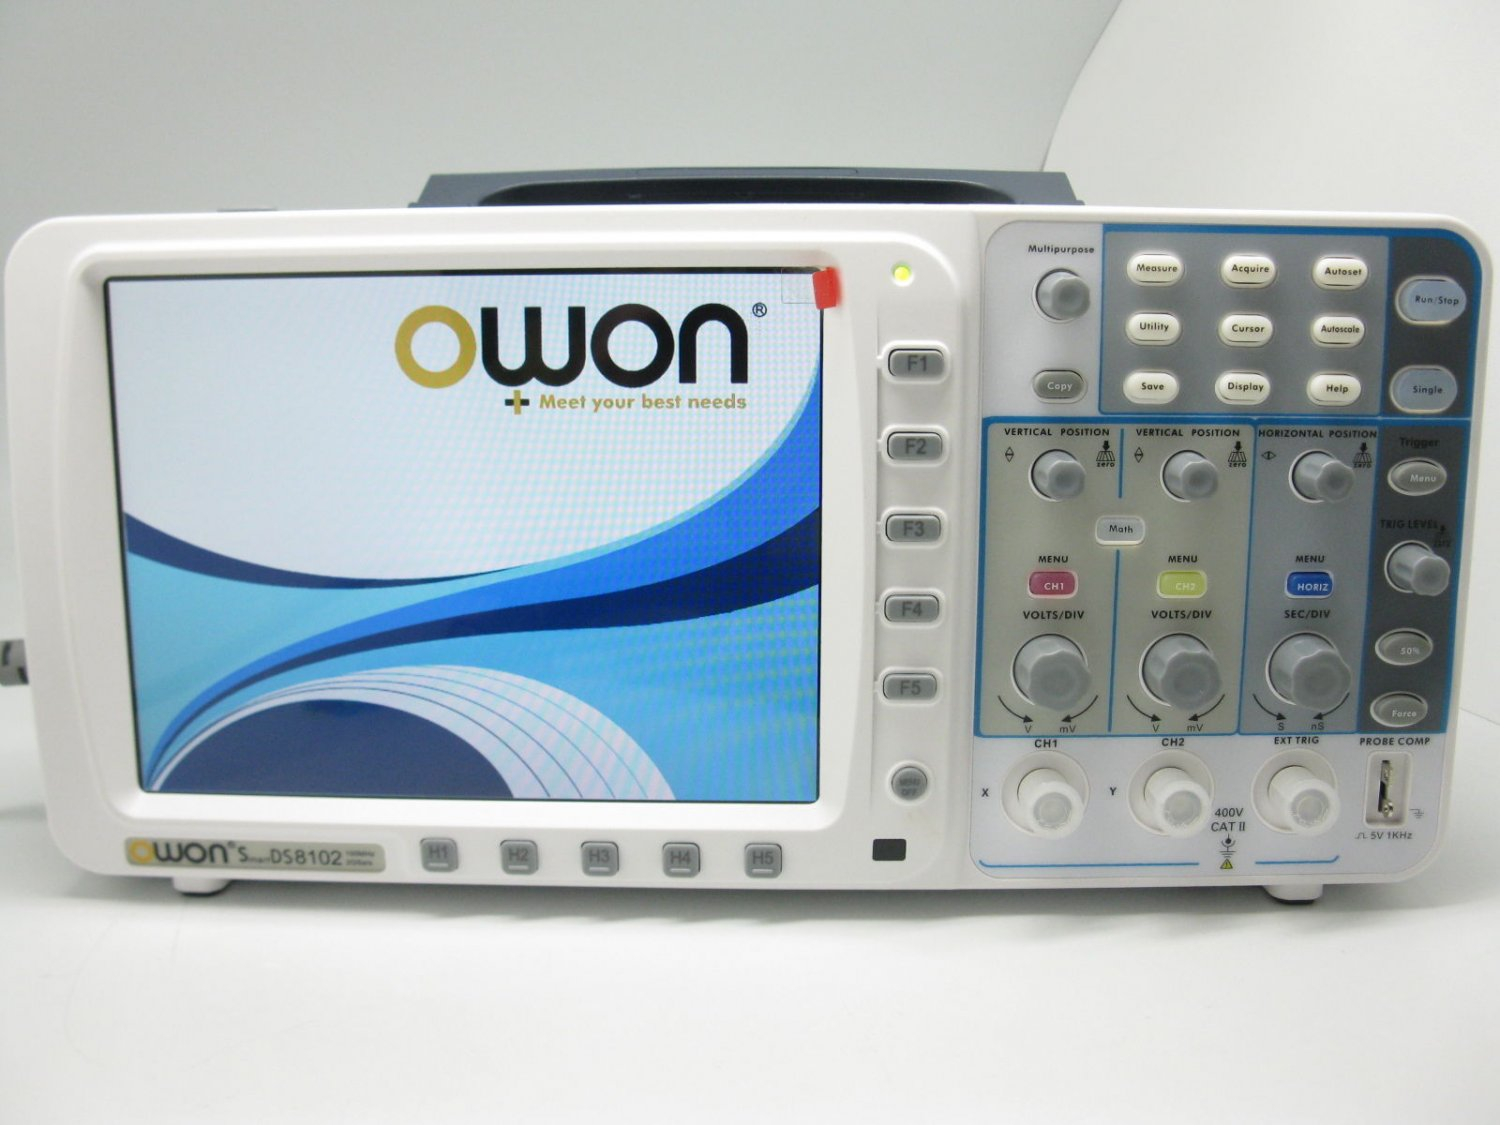 "OWON 100 MHZ OSCILLOSCOPE SDS7102 1G/S LARGE 8"" LCD WITH VGA + LAN. 3 YEARS WARRANTY"